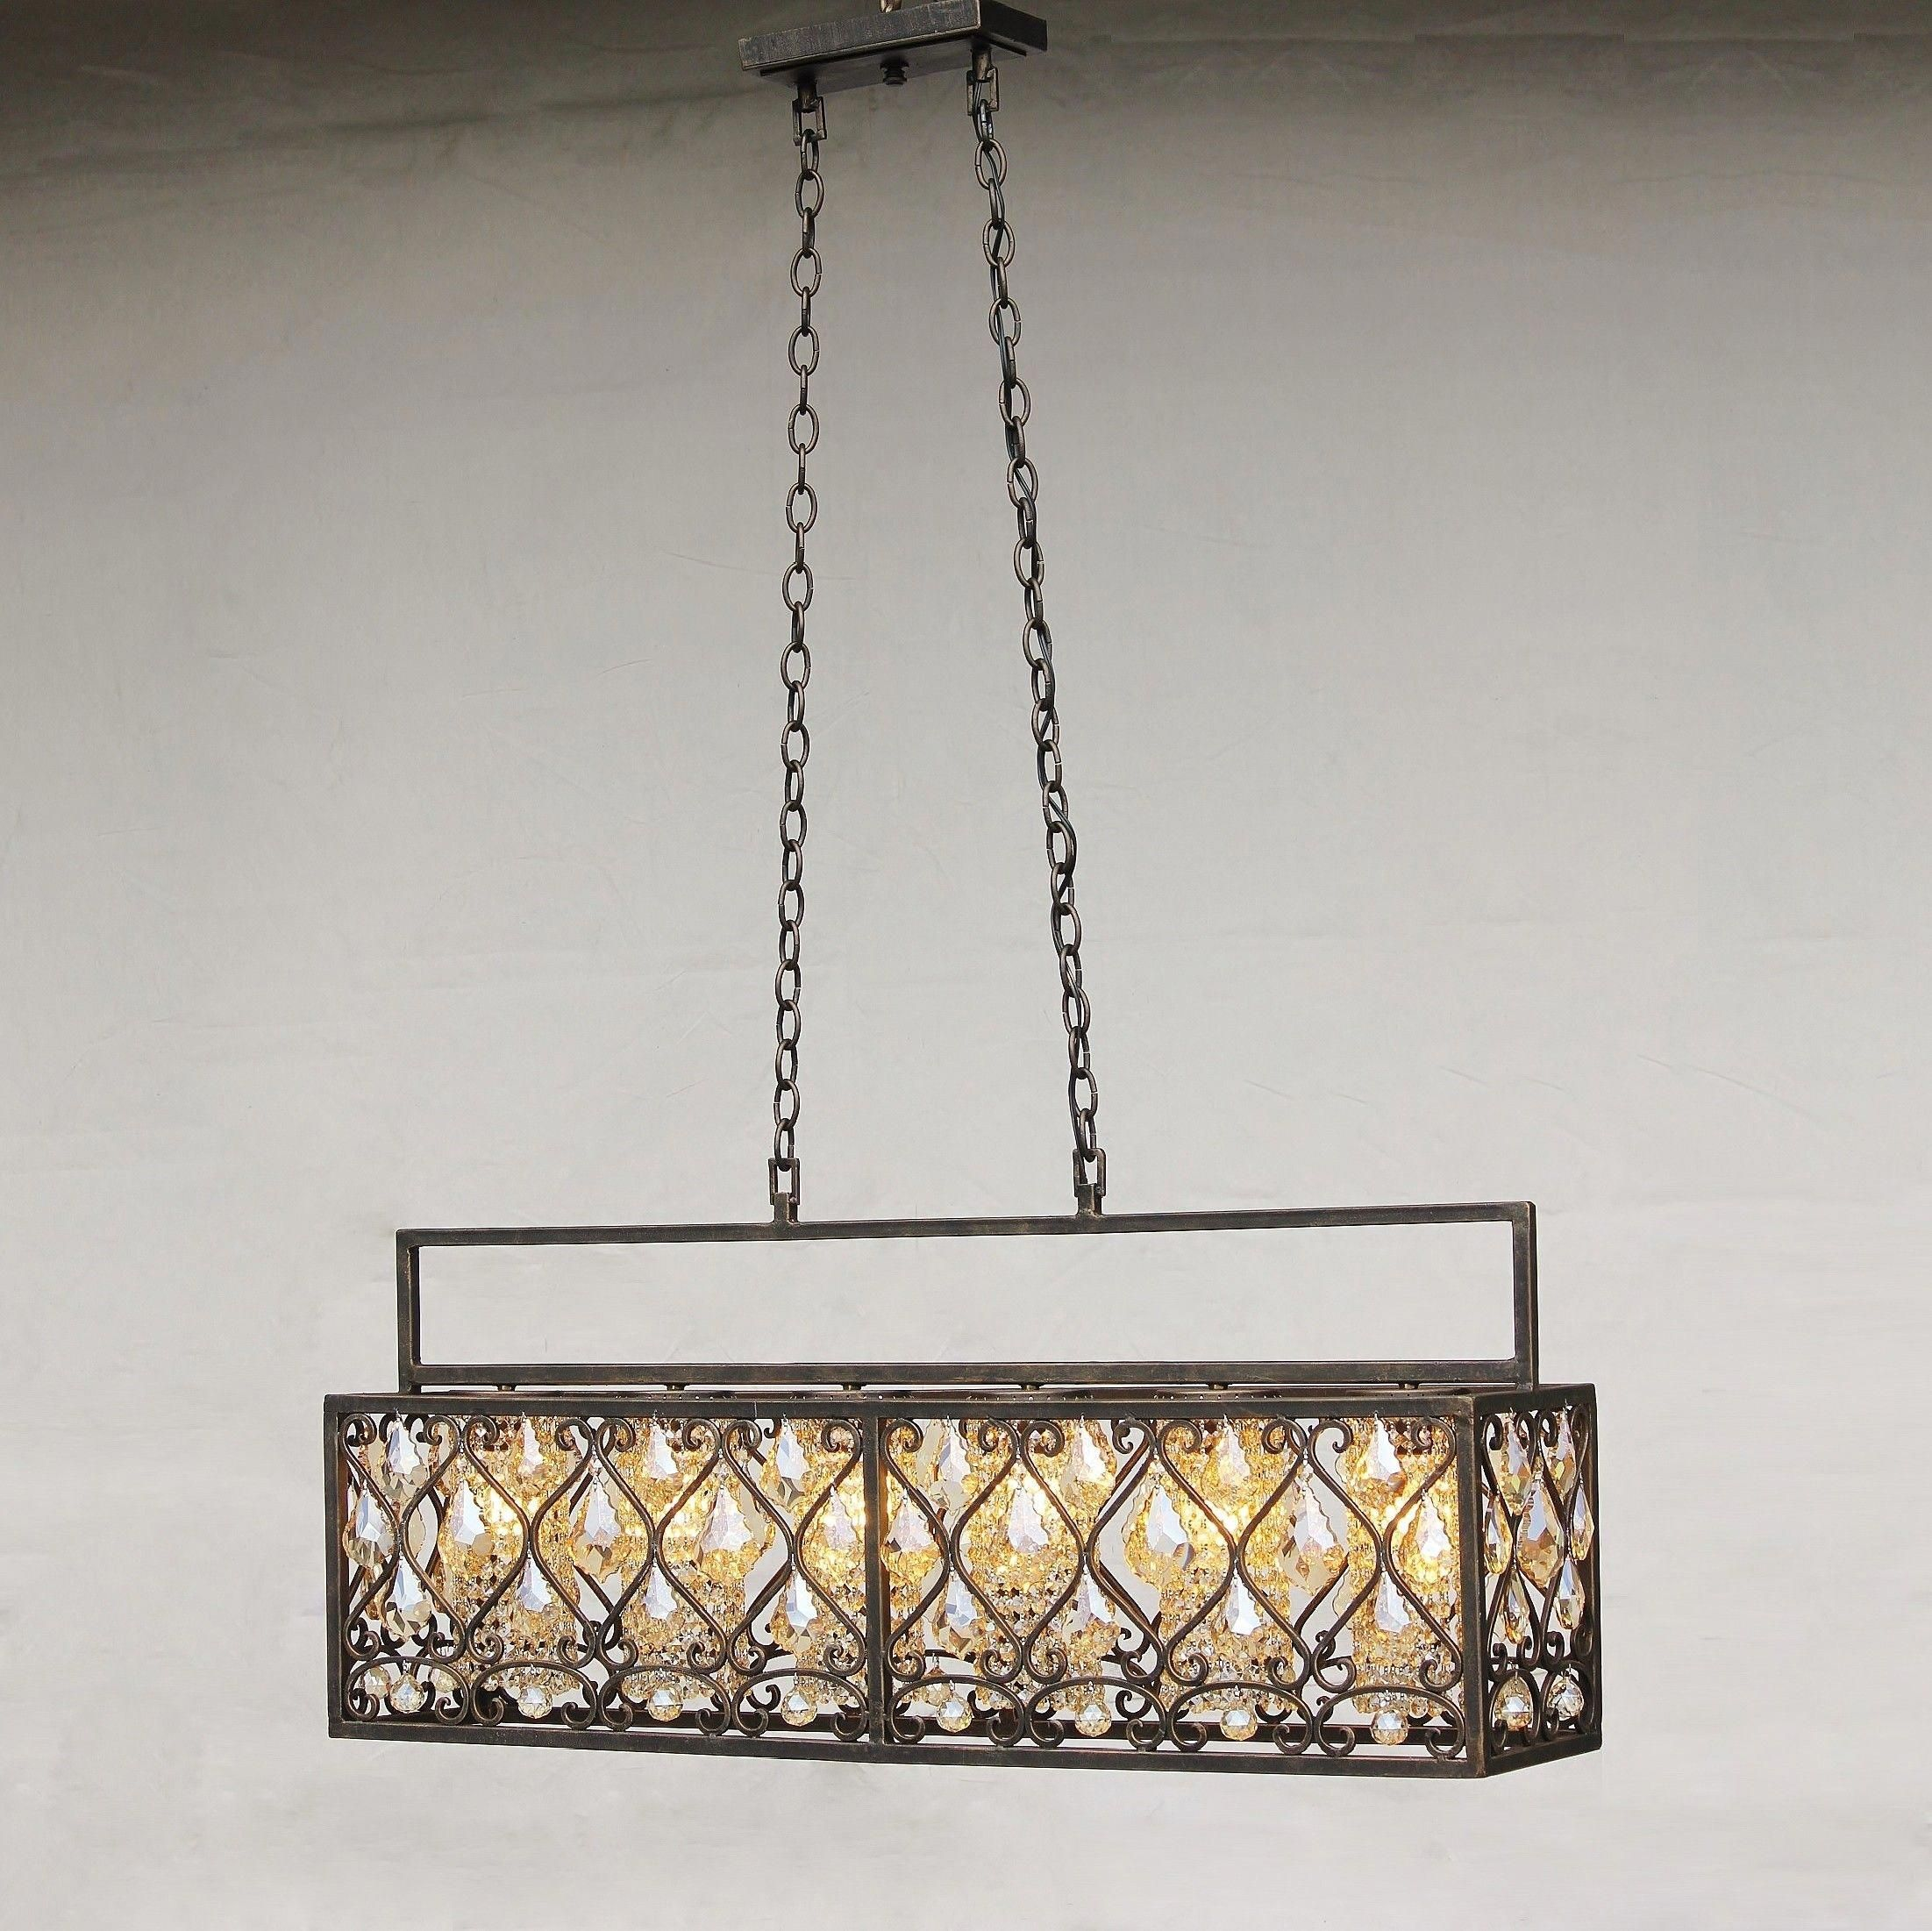 Wrought Iron Chandelier Spanishstyle